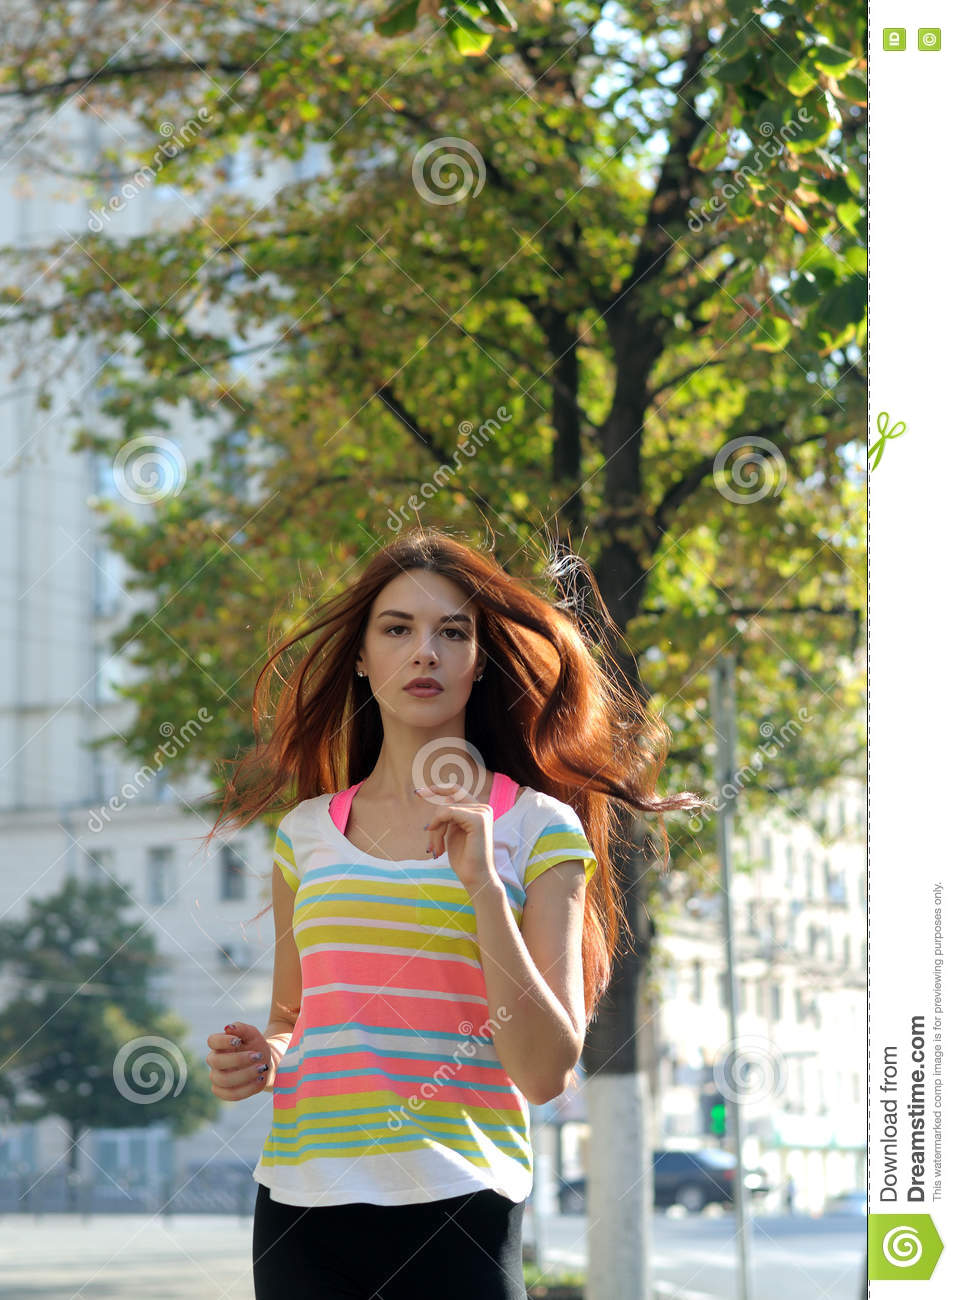 f72f190c Girl running down the street early in the morning in the city. She has long  red hair and wearing a striped shirt.